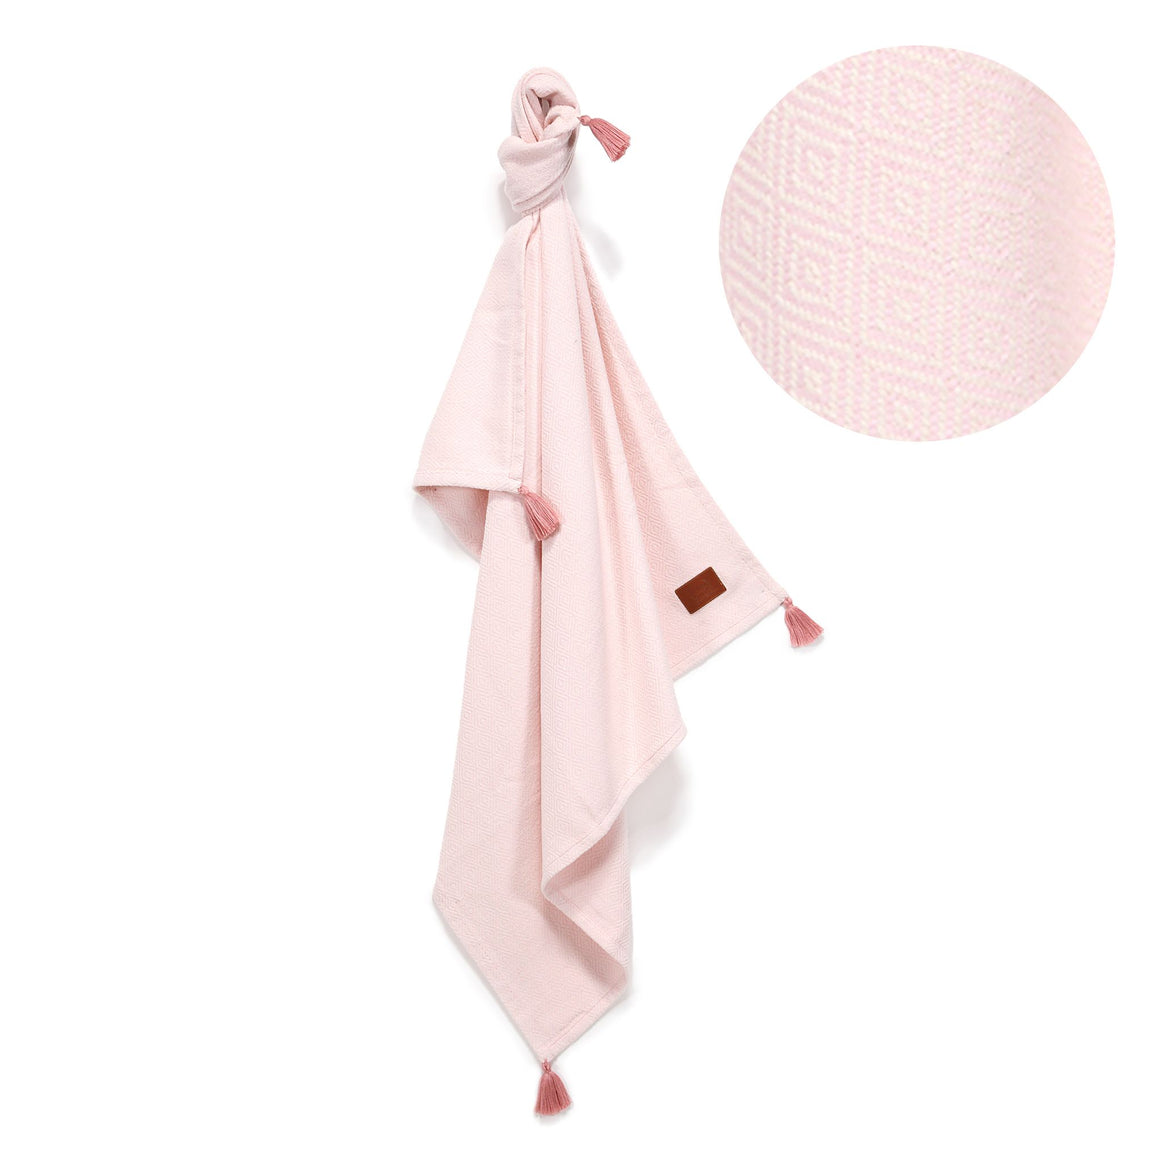 TENDER COTTON ETHNIC BLANKET - POWDER PINK